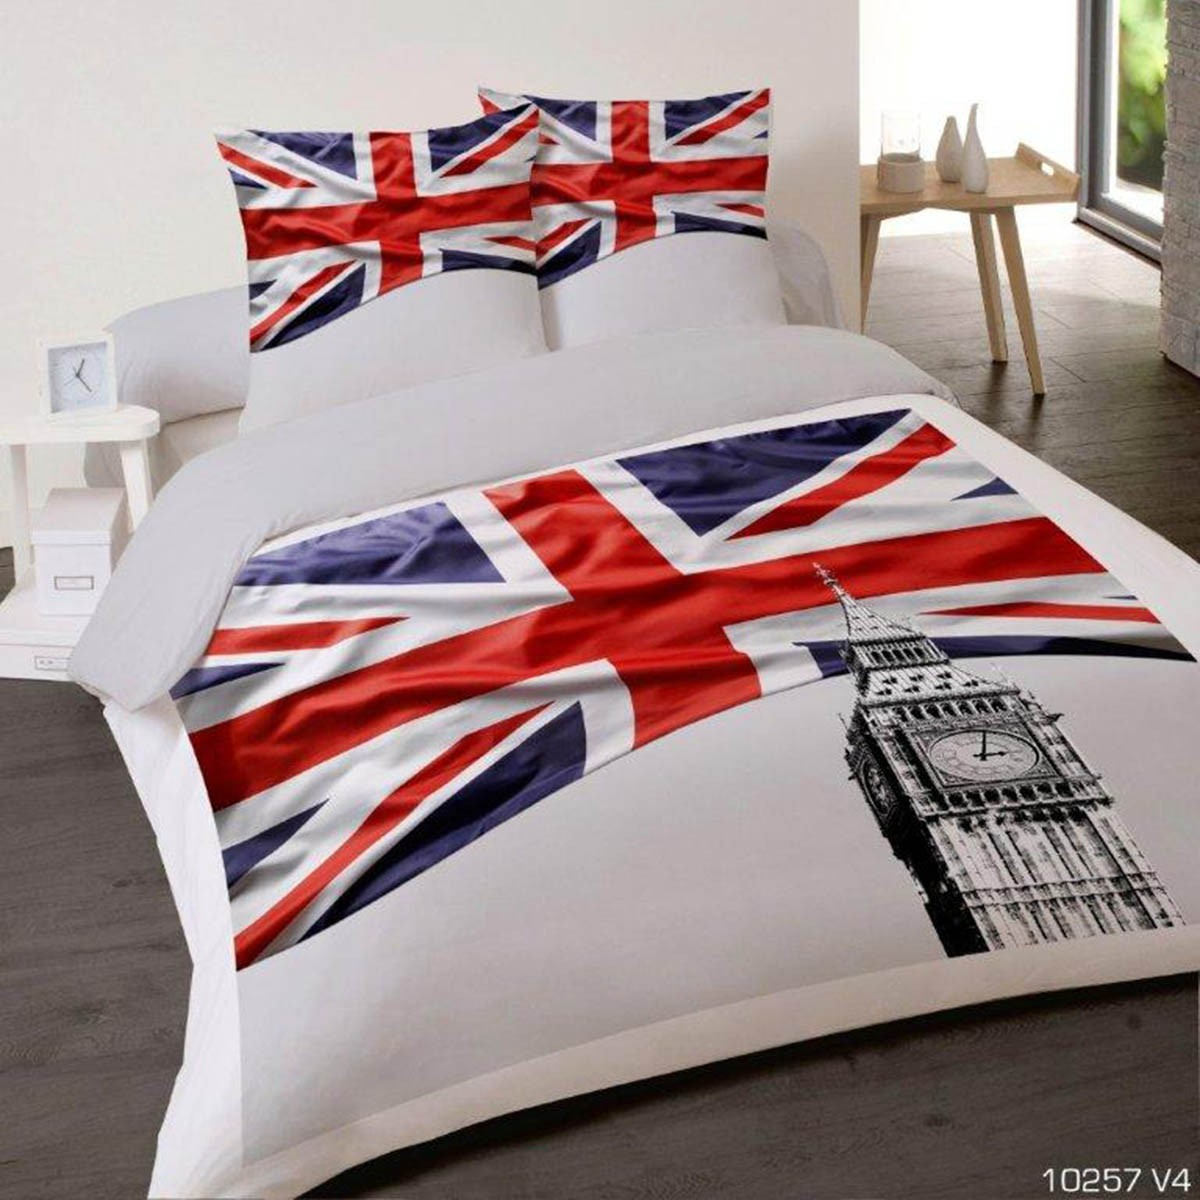 housse couette drapeau. Black Bedroom Furniture Sets. Home Design Ideas